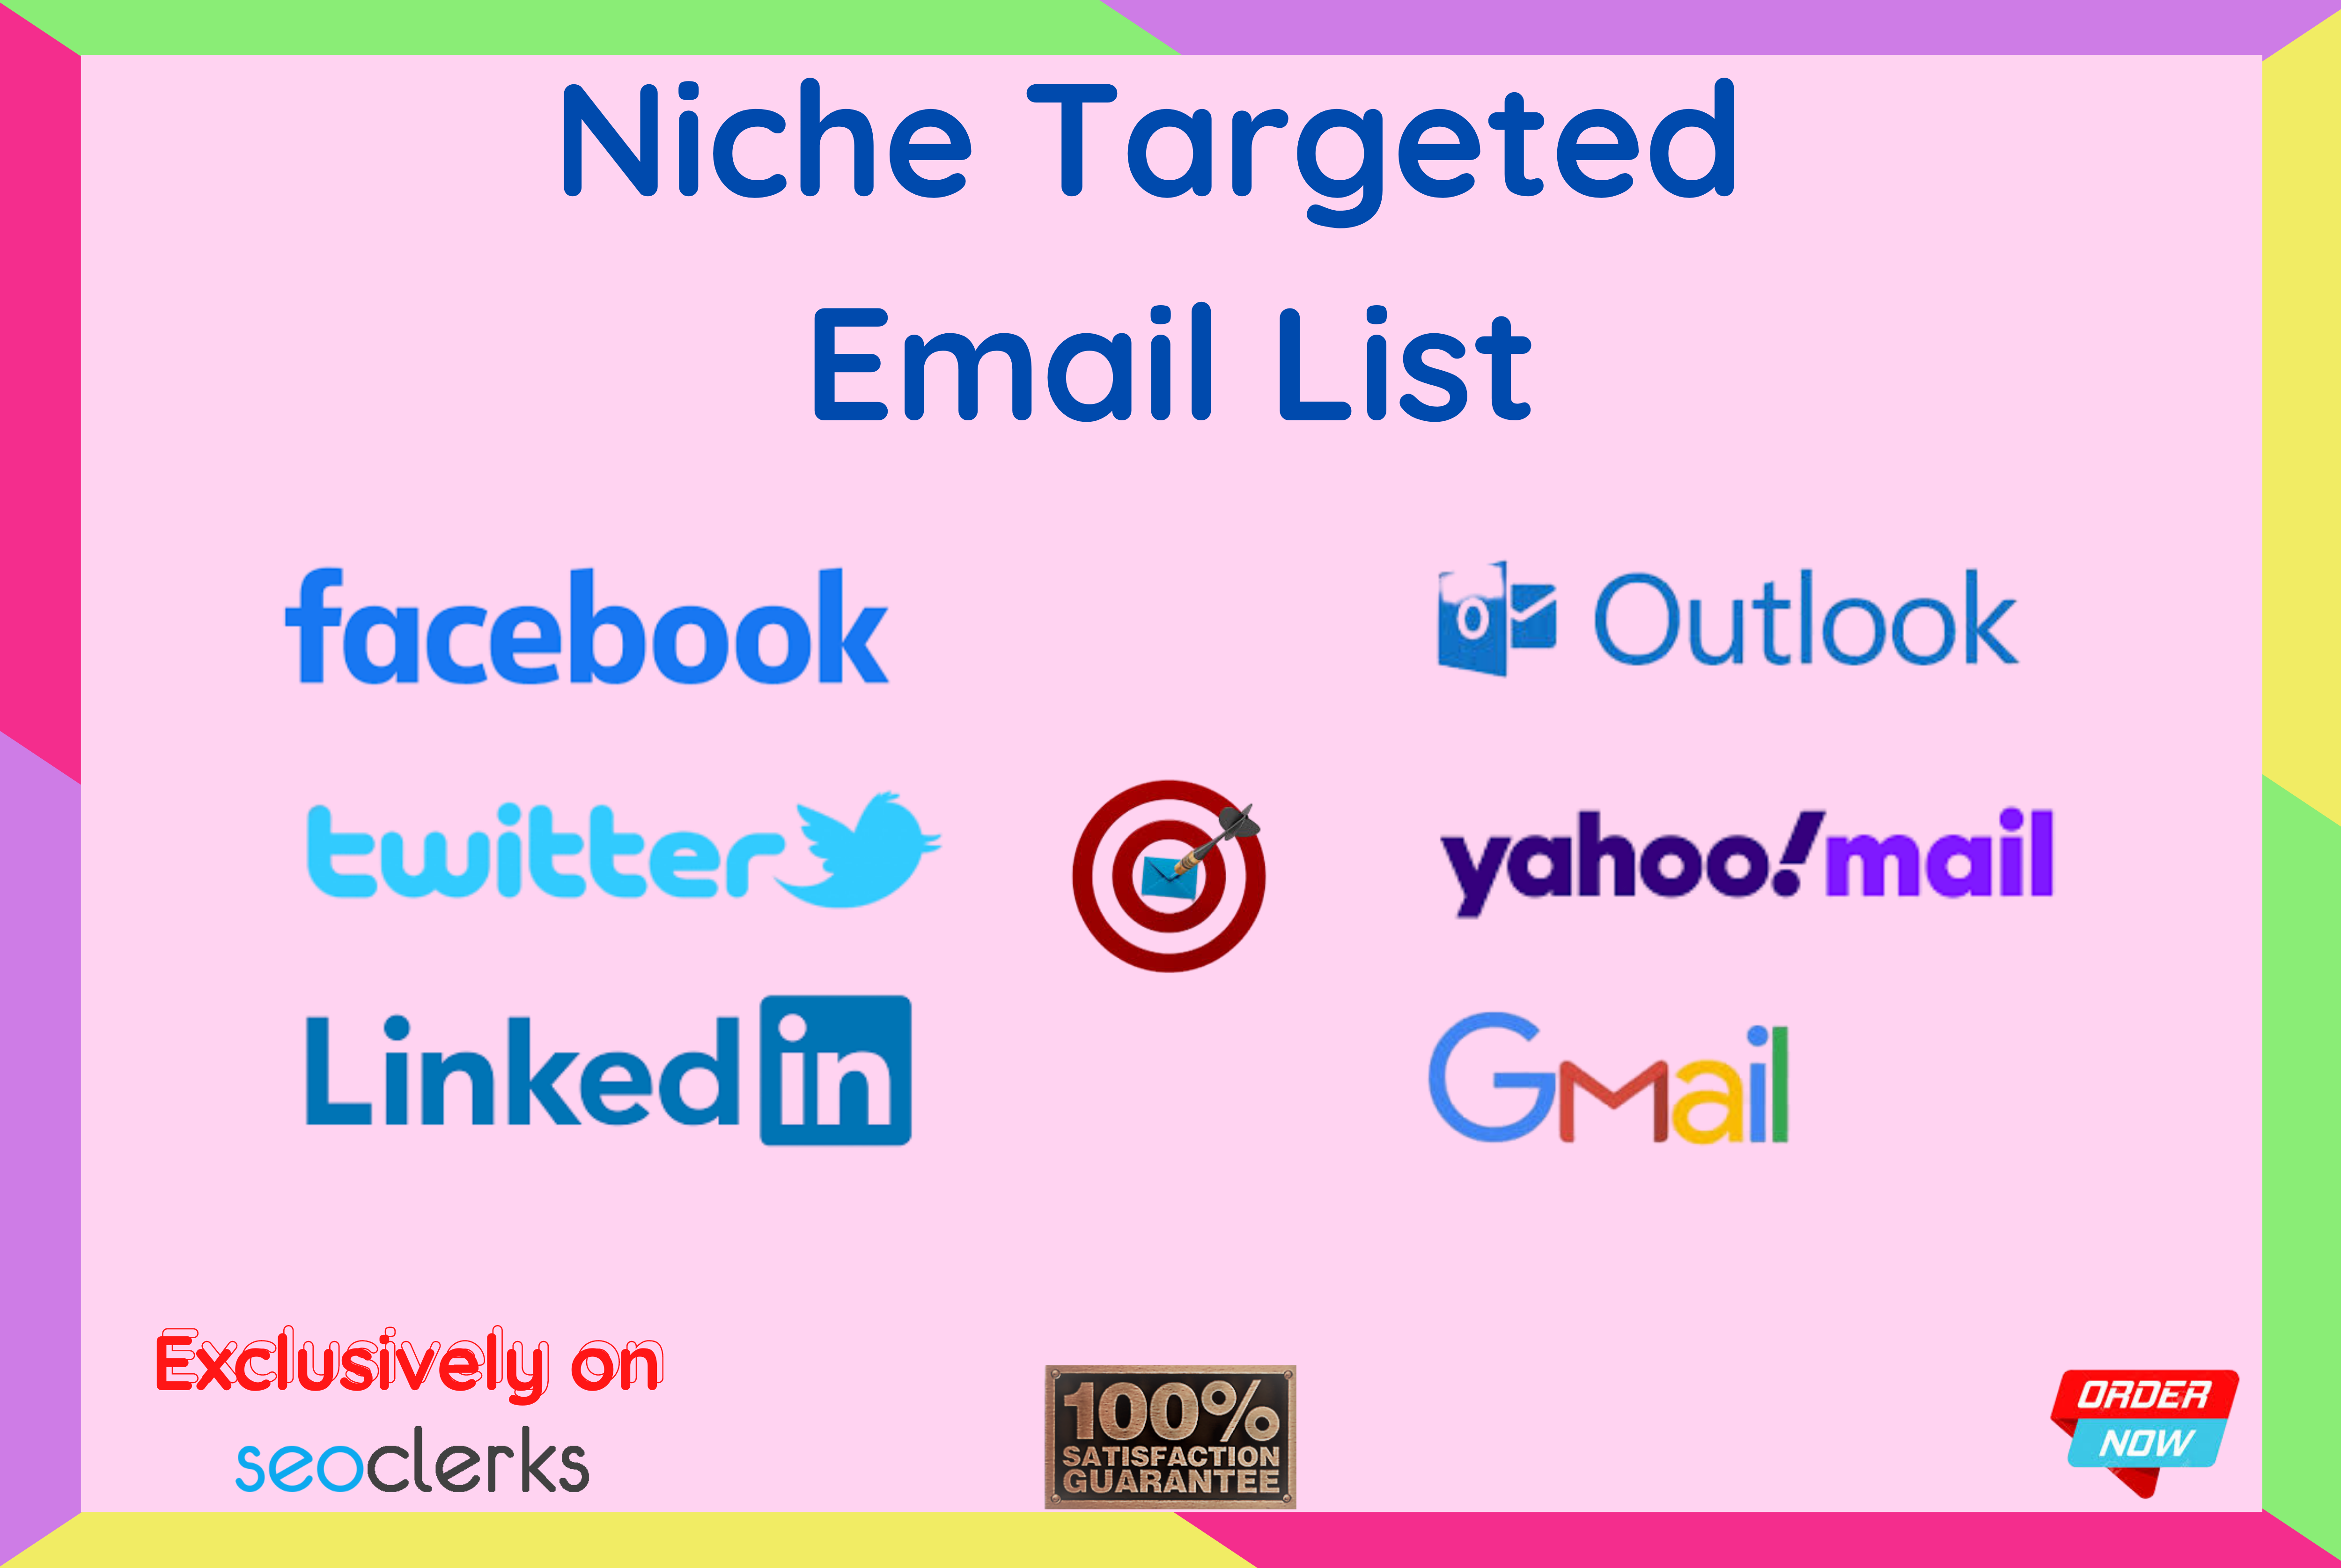 I will collect a niche targeted email list